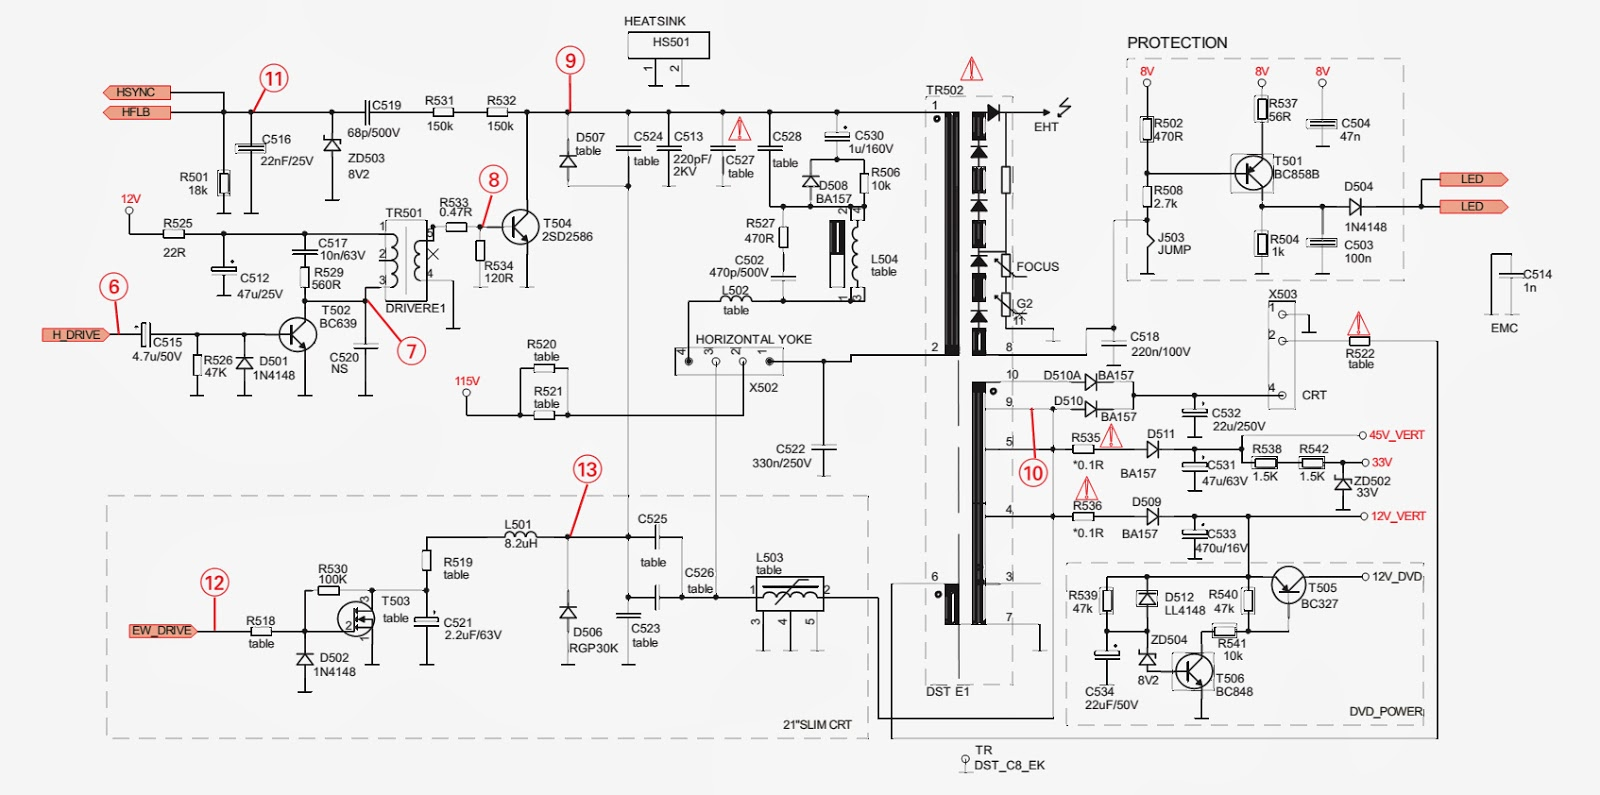 Western Isolation Module Wiring Diagram Unimount together with Meyer Snow Plow Wiring Diagram further Whelen Siren Wiring Diagram moreover Western Unimount Wiring Diagram 12 Pin as well 61515 Western Unimount 88 98 Chevy Gmc Hb3 Hb4 9 Pin Control Wiring Harness. on fisher plow light wiring diagram